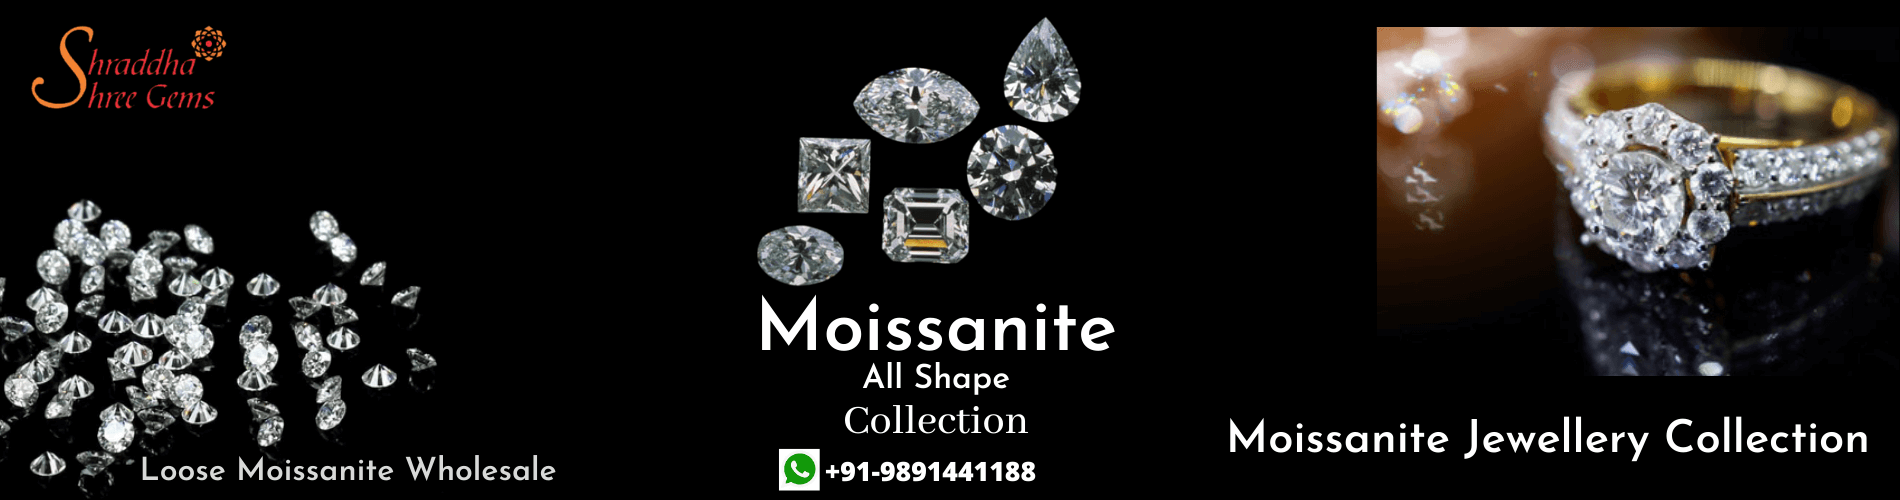 Moissanite Jewellery Collection Banner